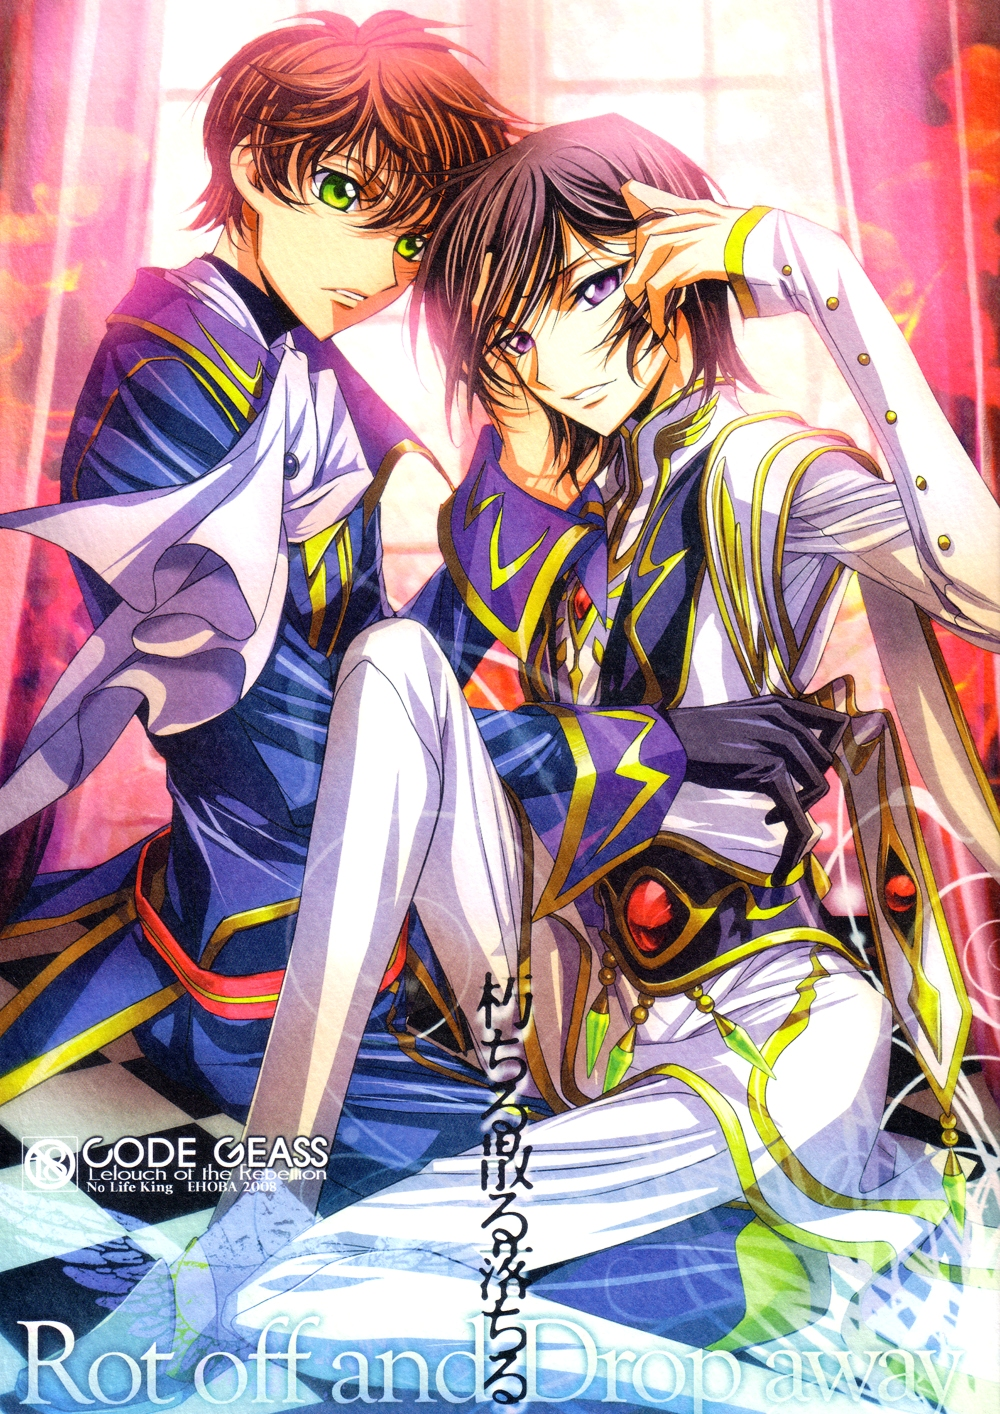 lelouch and suzaku relationship quiz